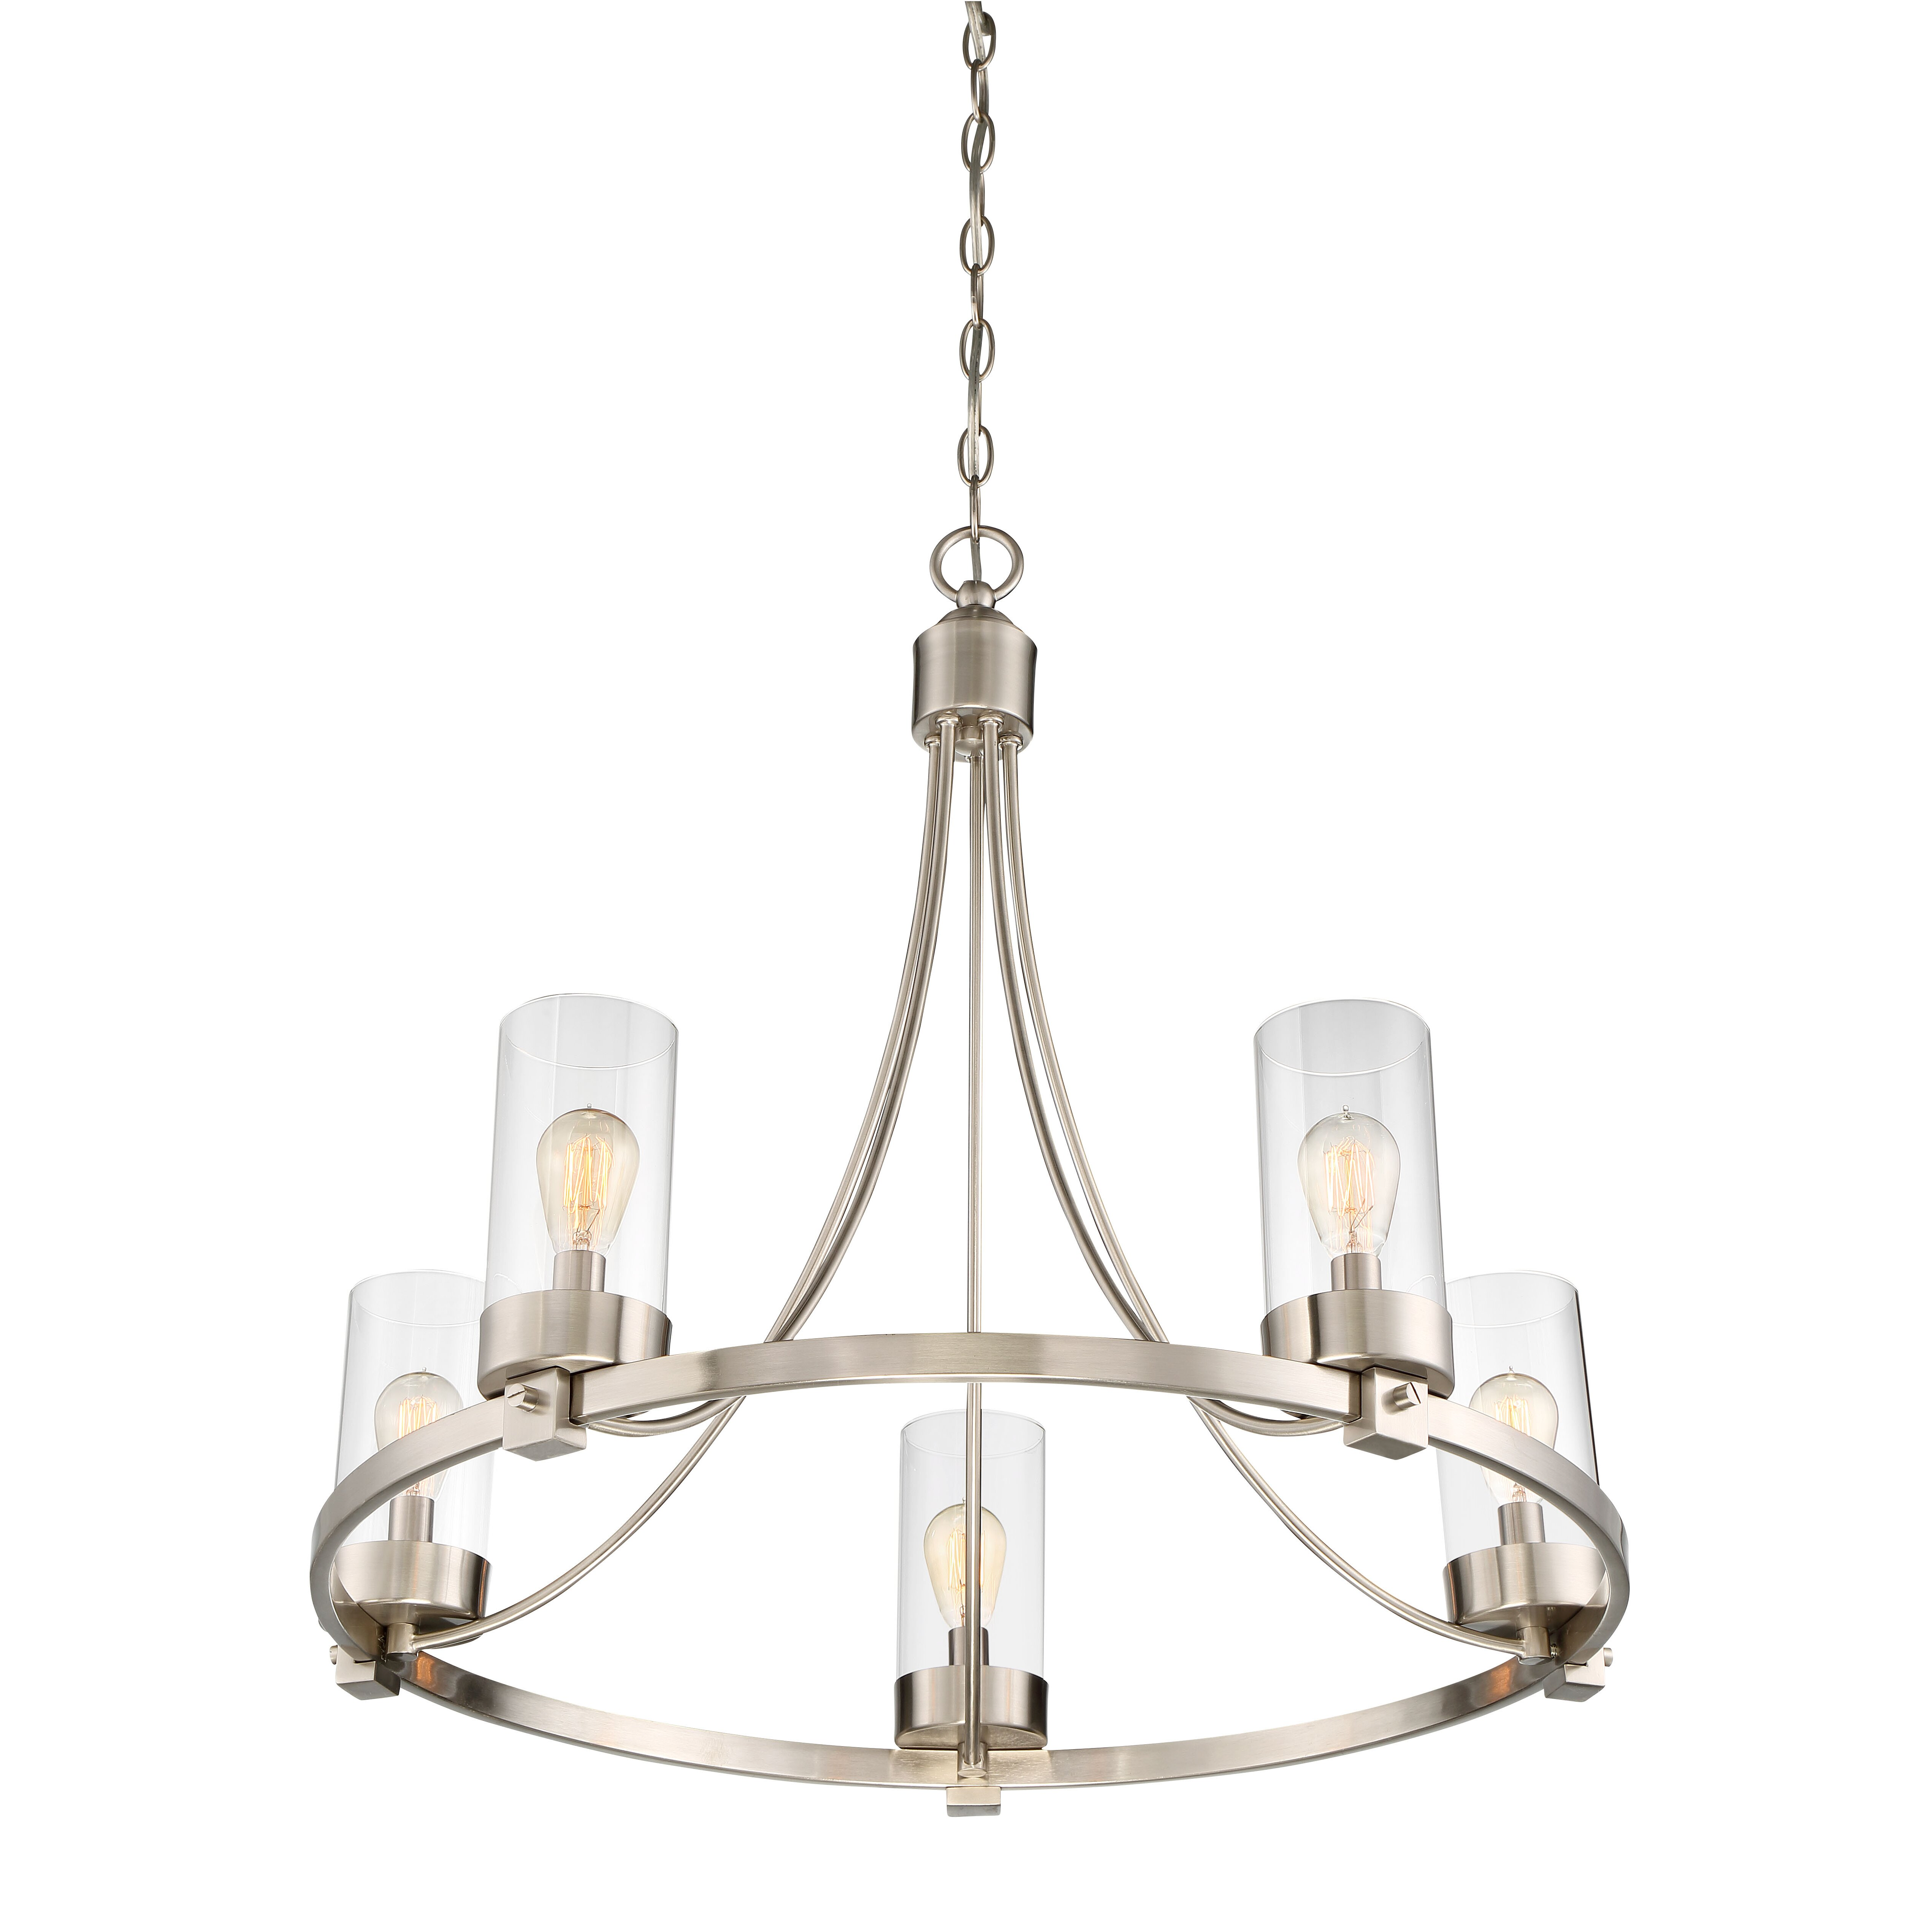 Laurel Foundry Modern Farmhouse Agave 5 Light Candle Chandelier & Reviews